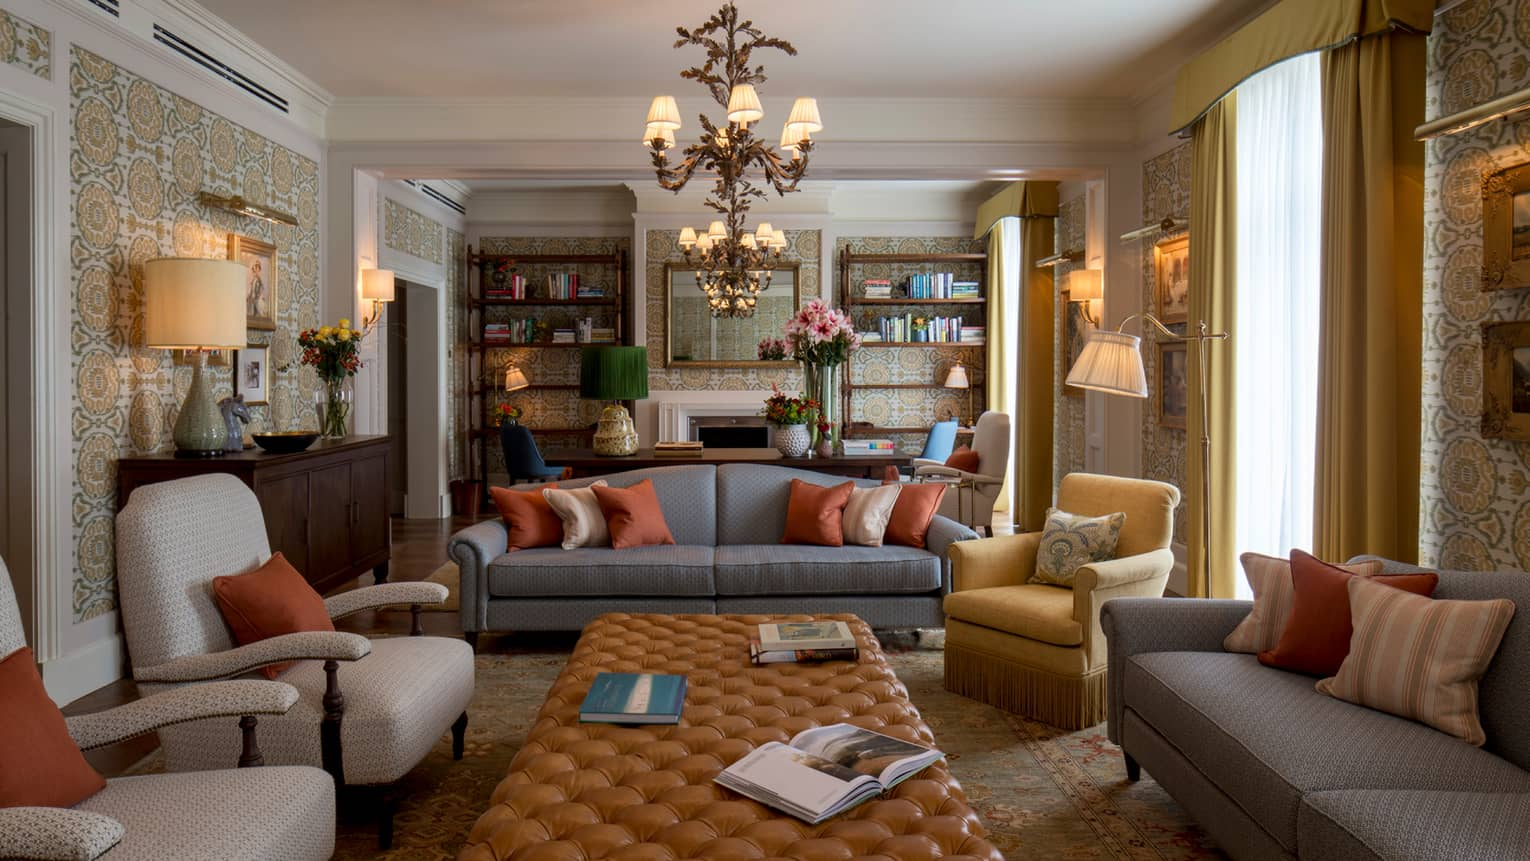 Royal Suite sofas, chairs around long tufted leather bench under chandeliers, bookshelves